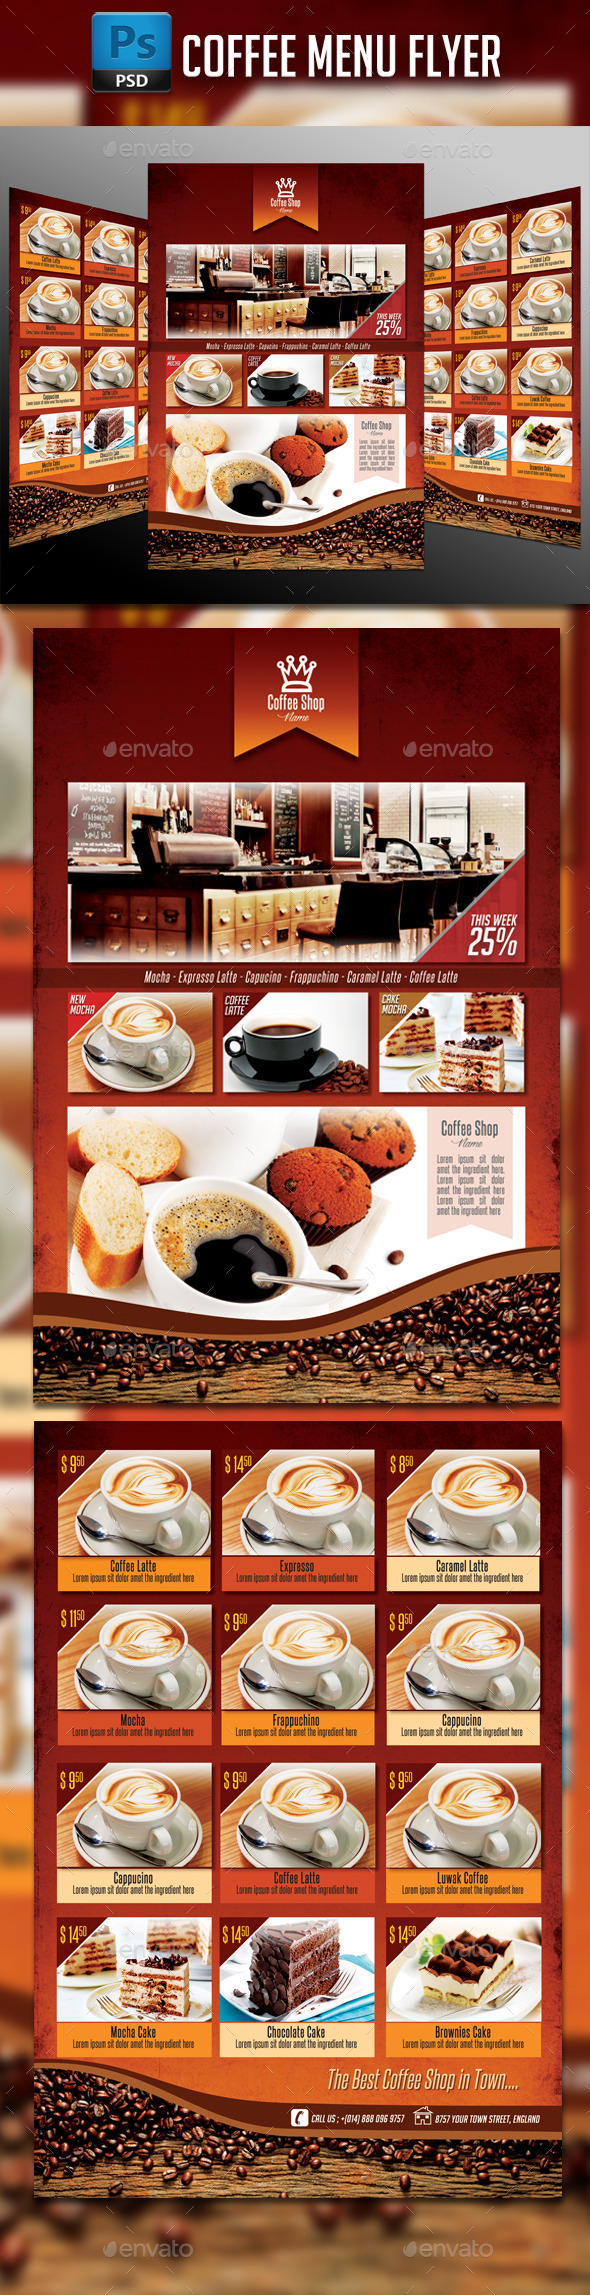 GraphicRiver Coffee Menu Flyer 11035046